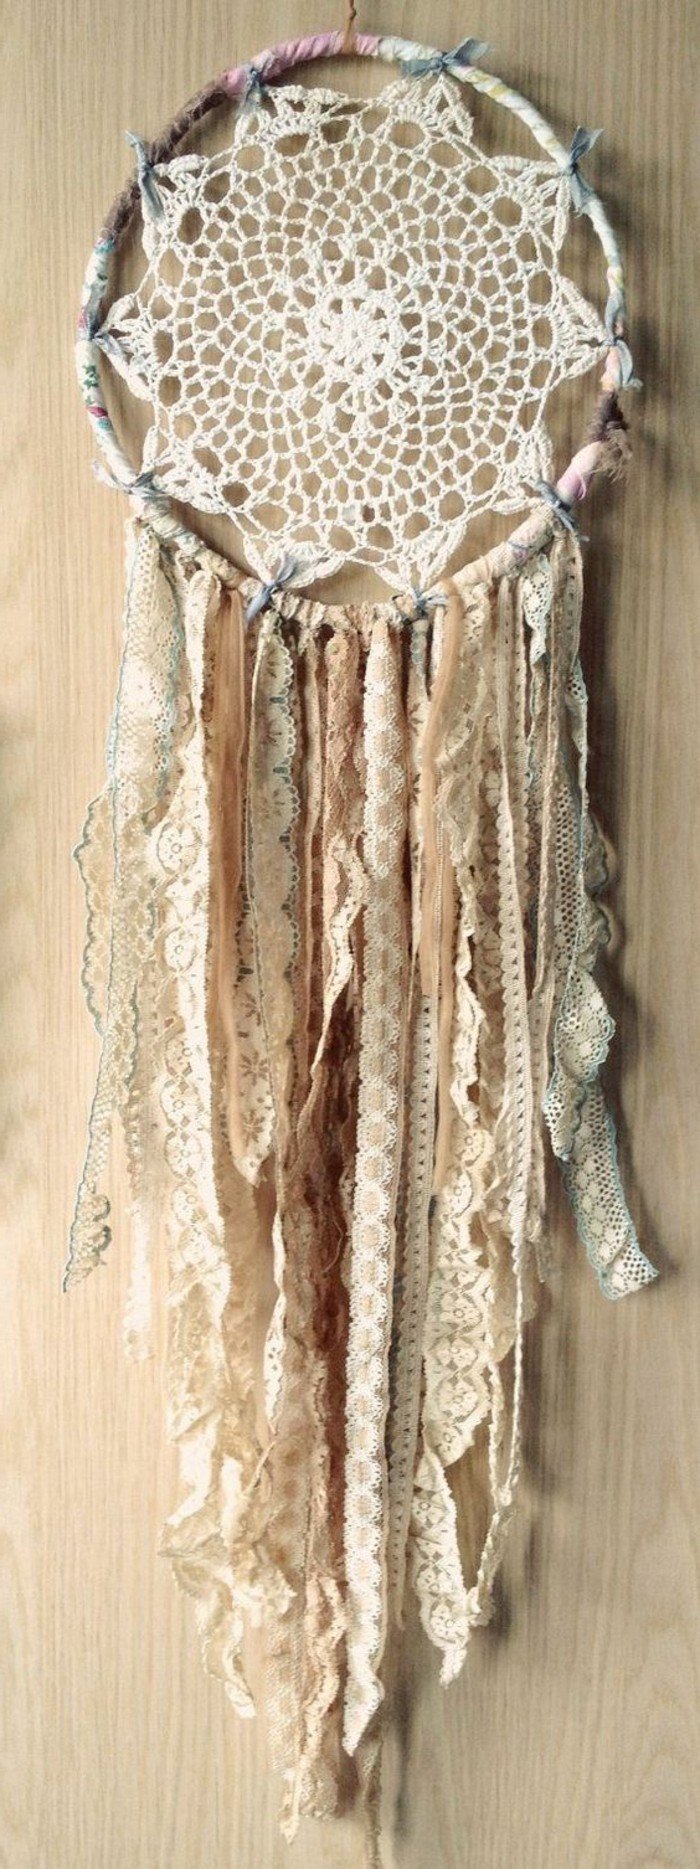 antique lace ribbons, in pale beige, cream and off white, attached to a boho dreamcatcher, with a crocheted doily, pictures of dream catchers, pale beige wooden background